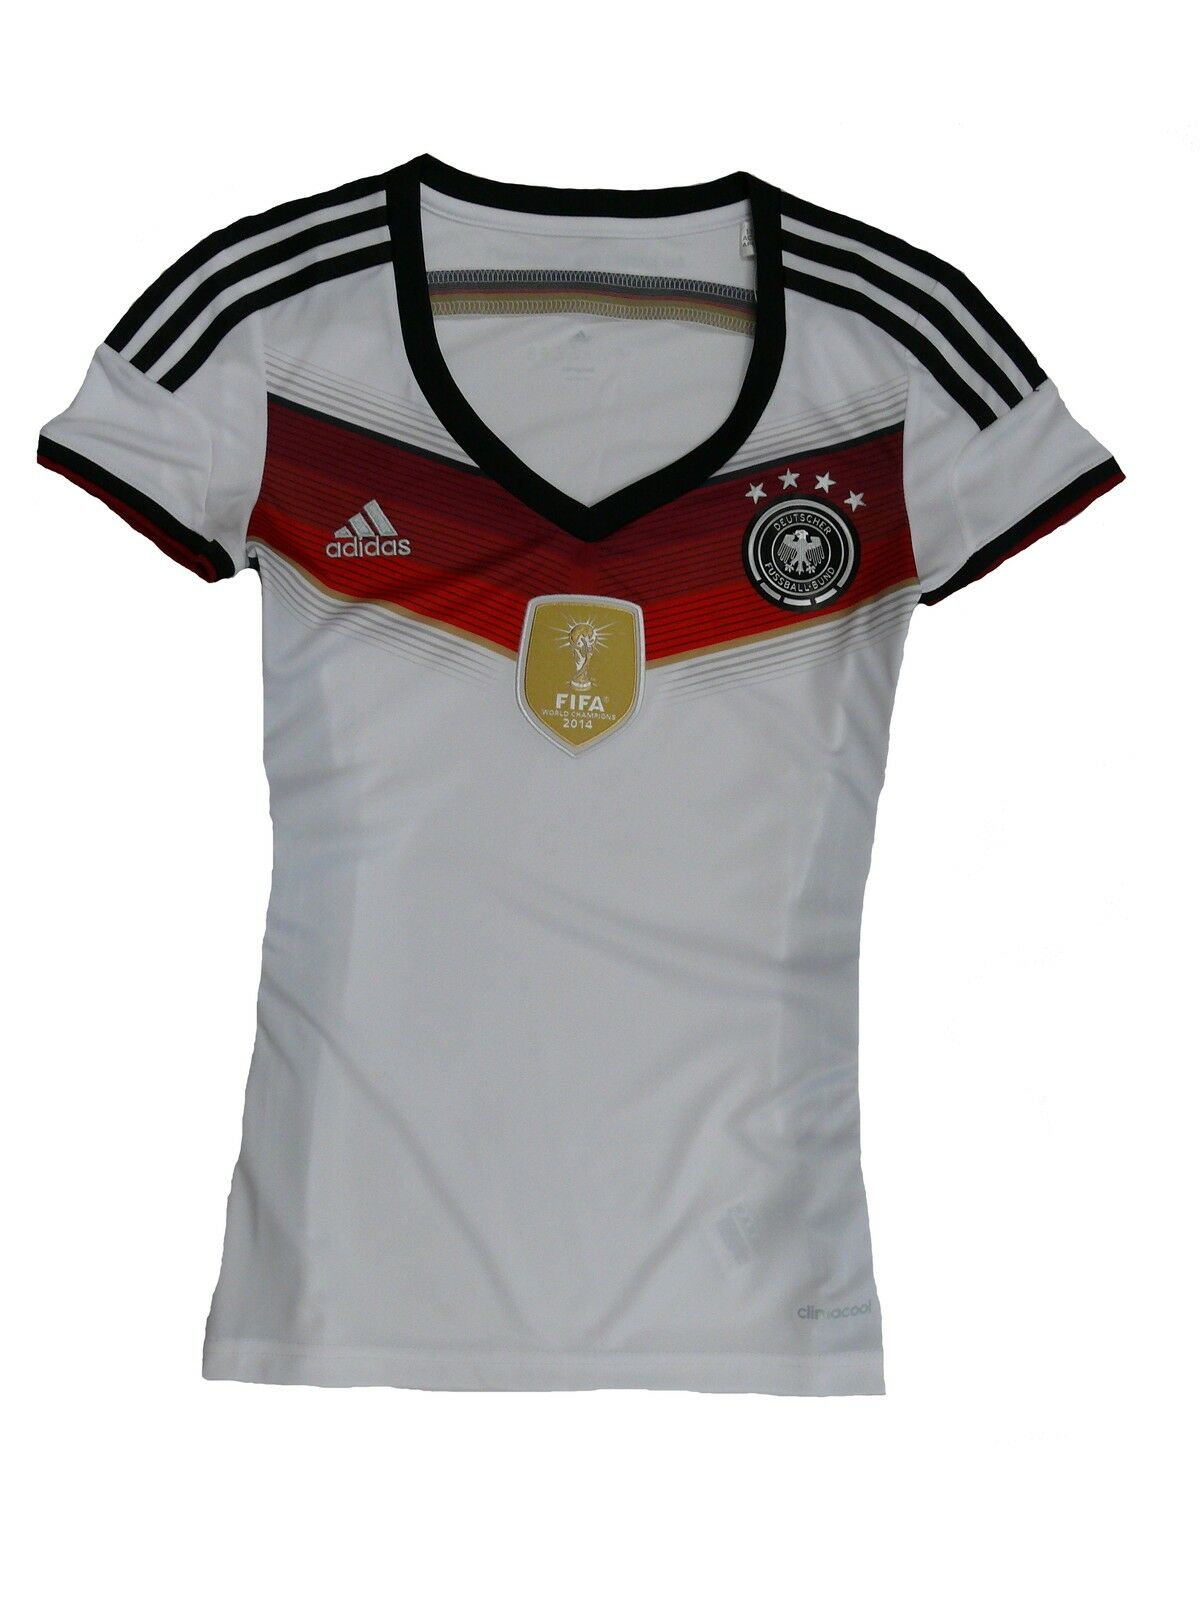 Adidas Germany Ladies DFB Jersey 2014 4 Stars Size 2XS (28)